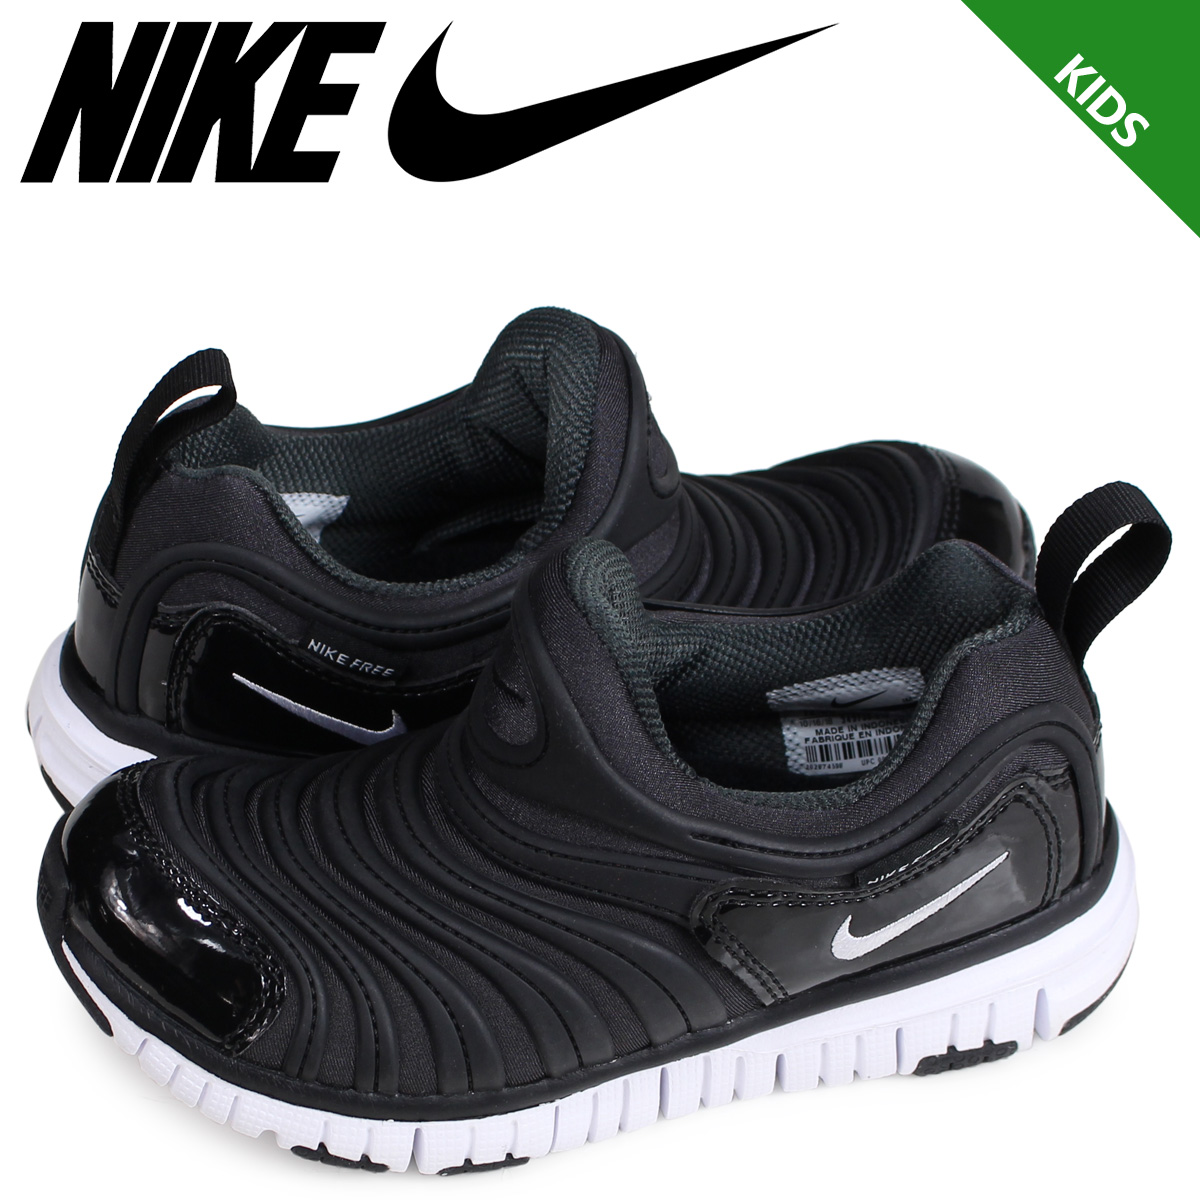 buy online ac0e3 08332 NIKE DYNAMO FREE PS Nike dynamo-free kids sneakers 343,738-013 black  1 26  Shinnyu load   181